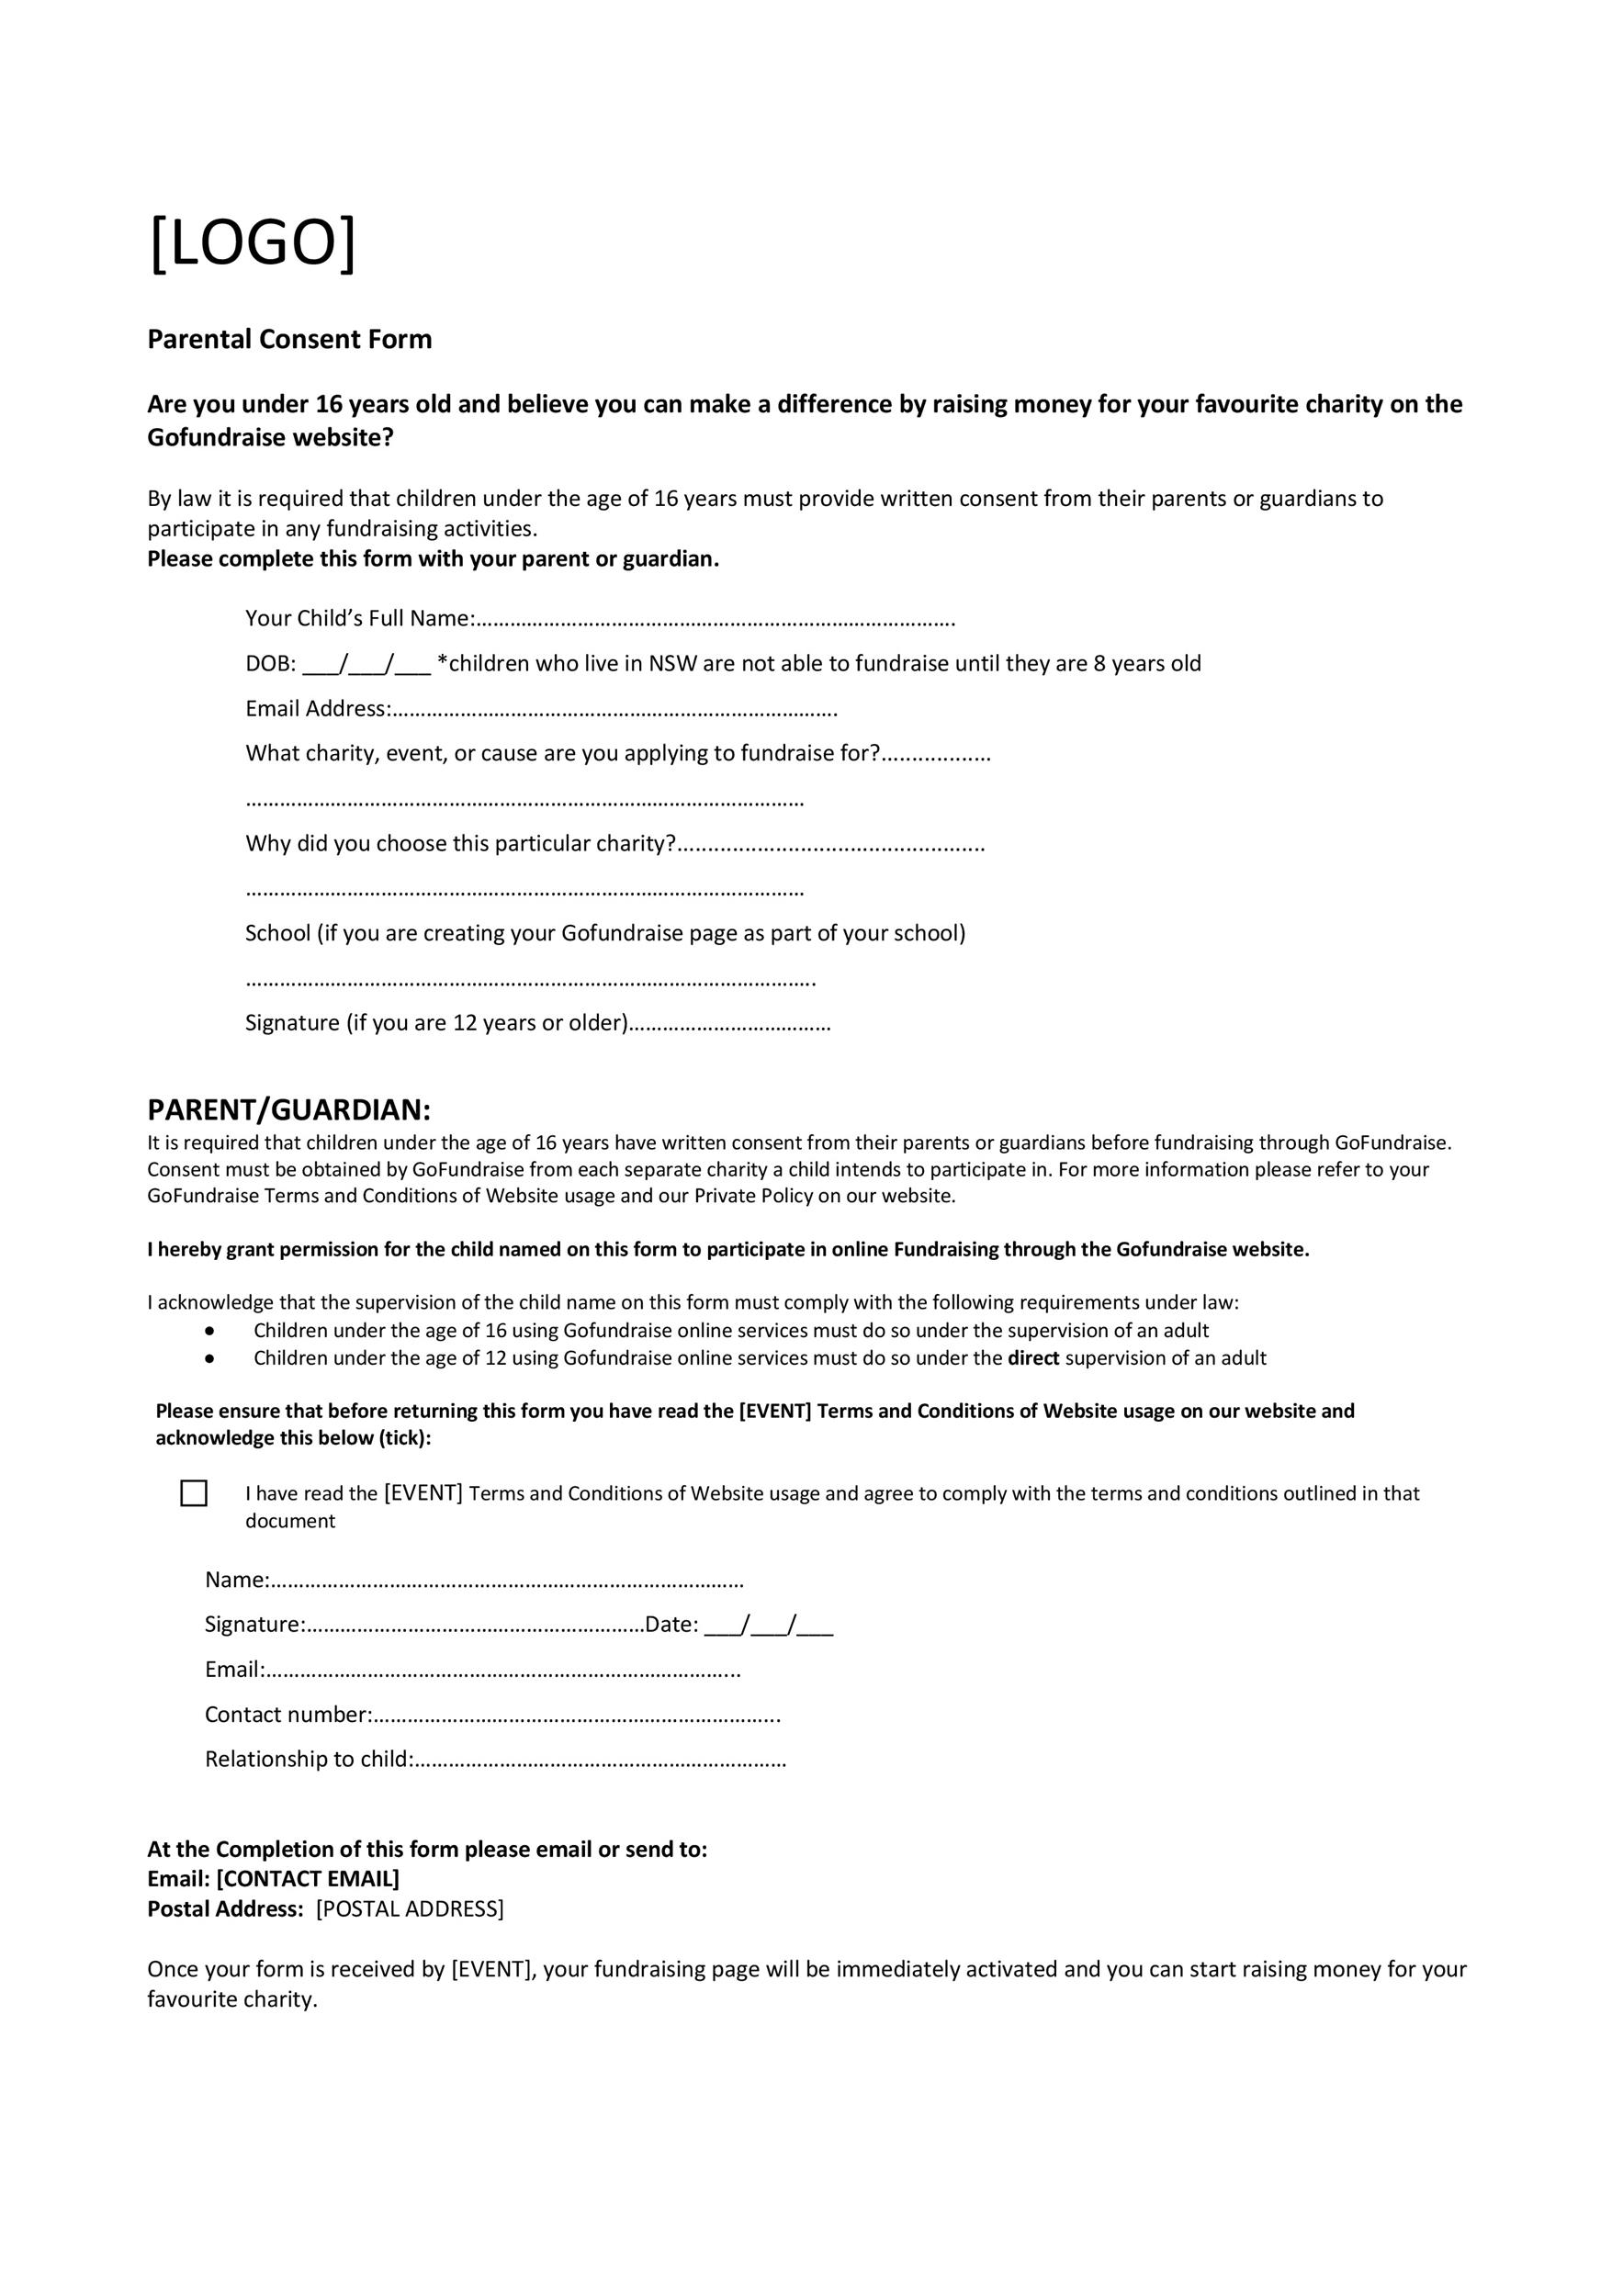 50 Printable Parental Consent Form Templates Template Lab